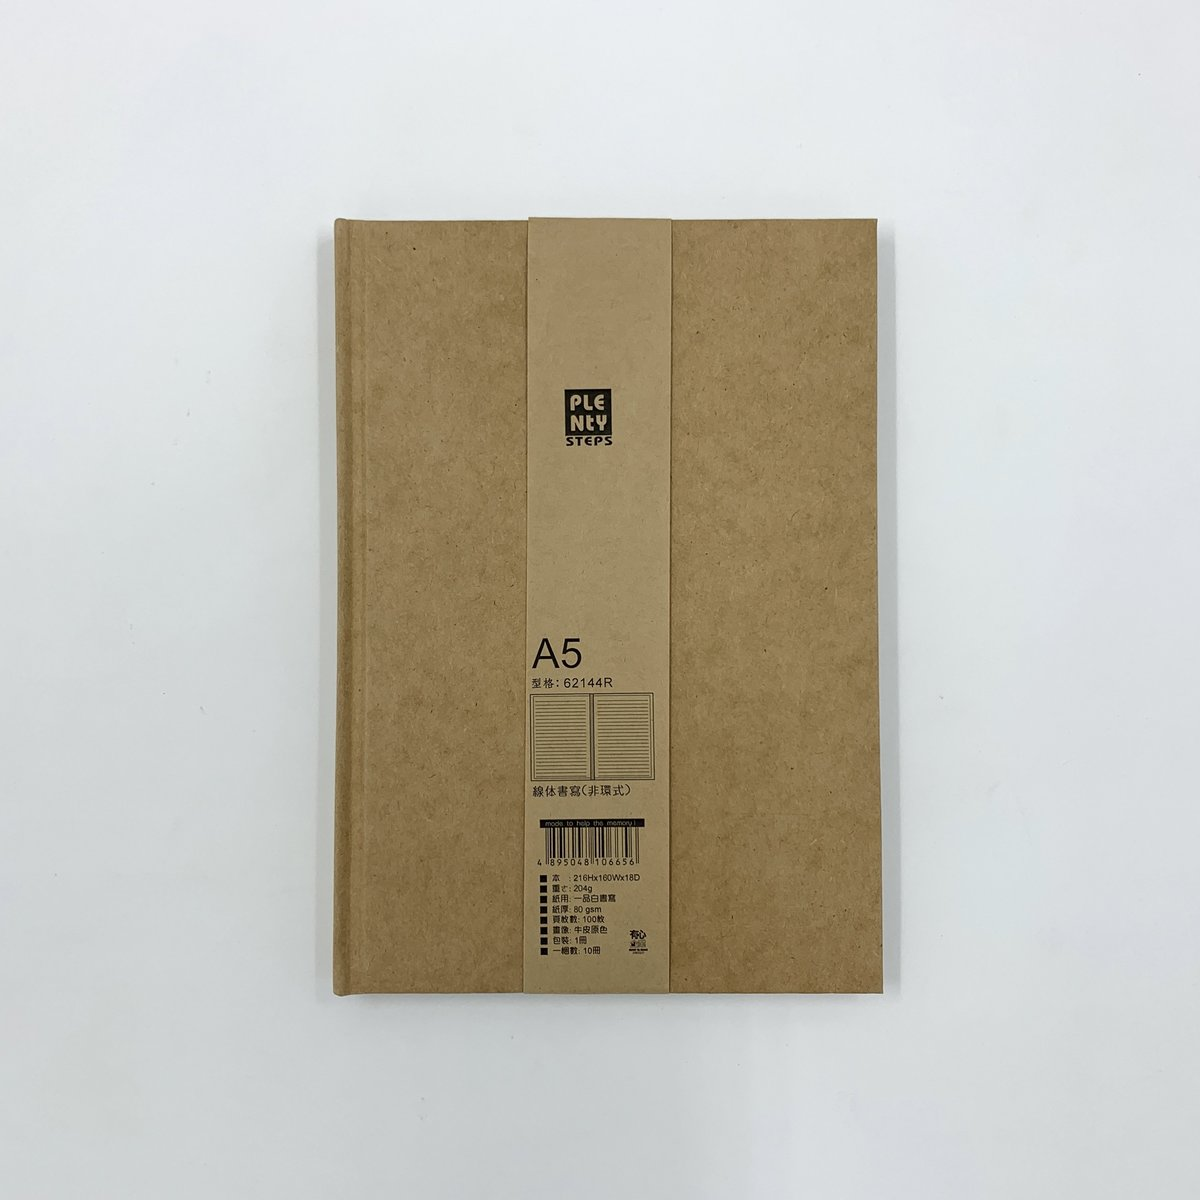 #62144R A5 HARDCOVER Lines Notebook